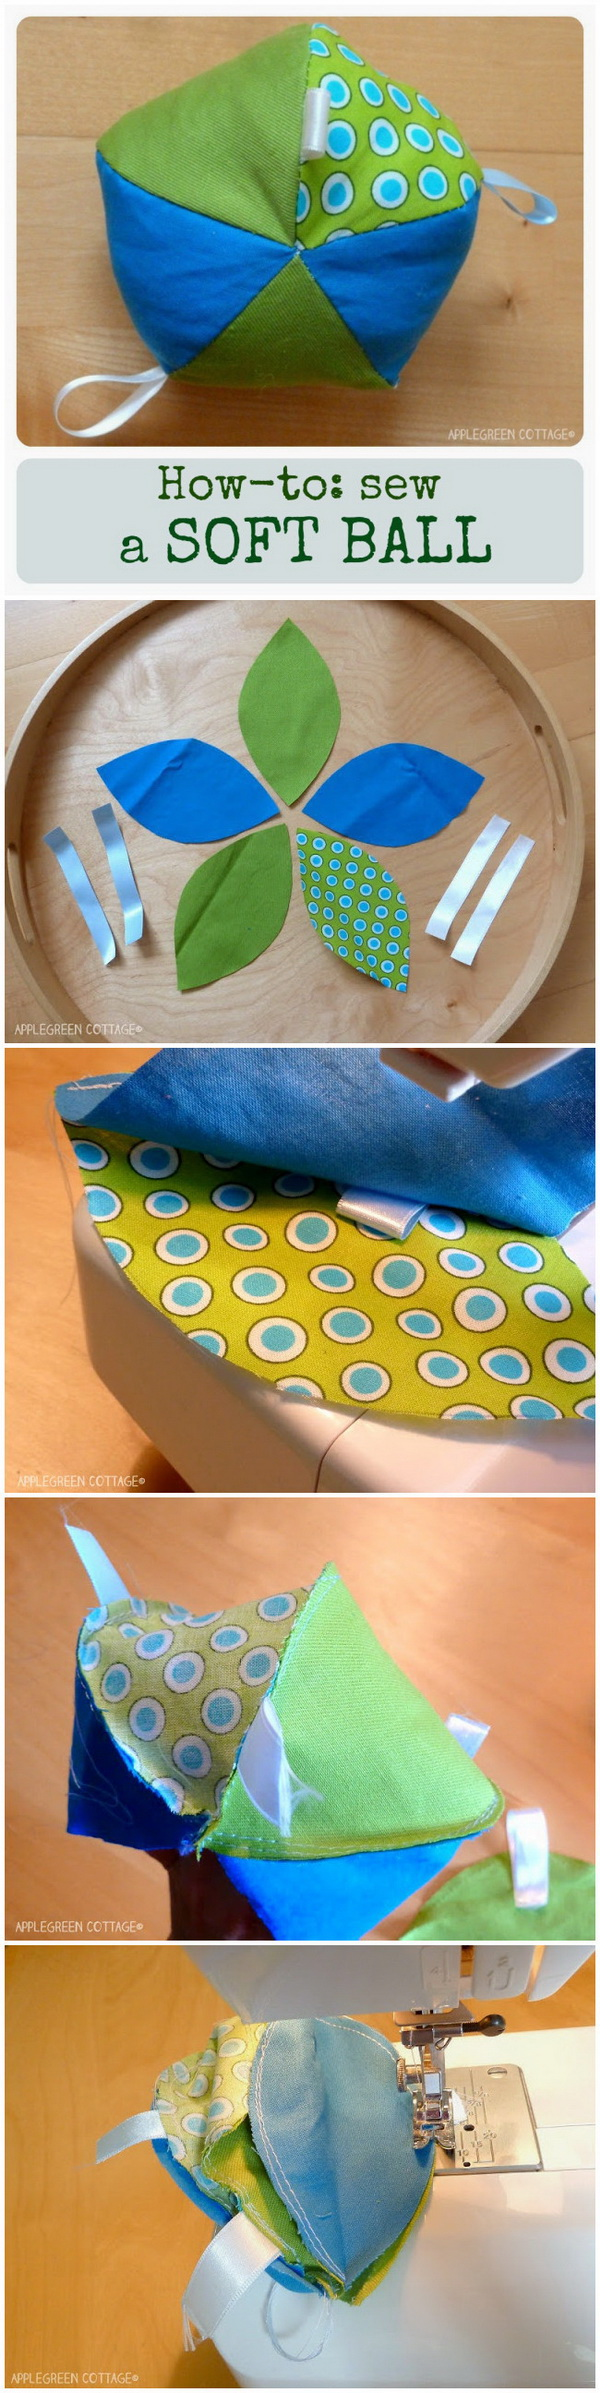 Sew a Soft Ball. These easy to sew soft balls are an all-time favorite with babies and always turned out to be a great personal gift.